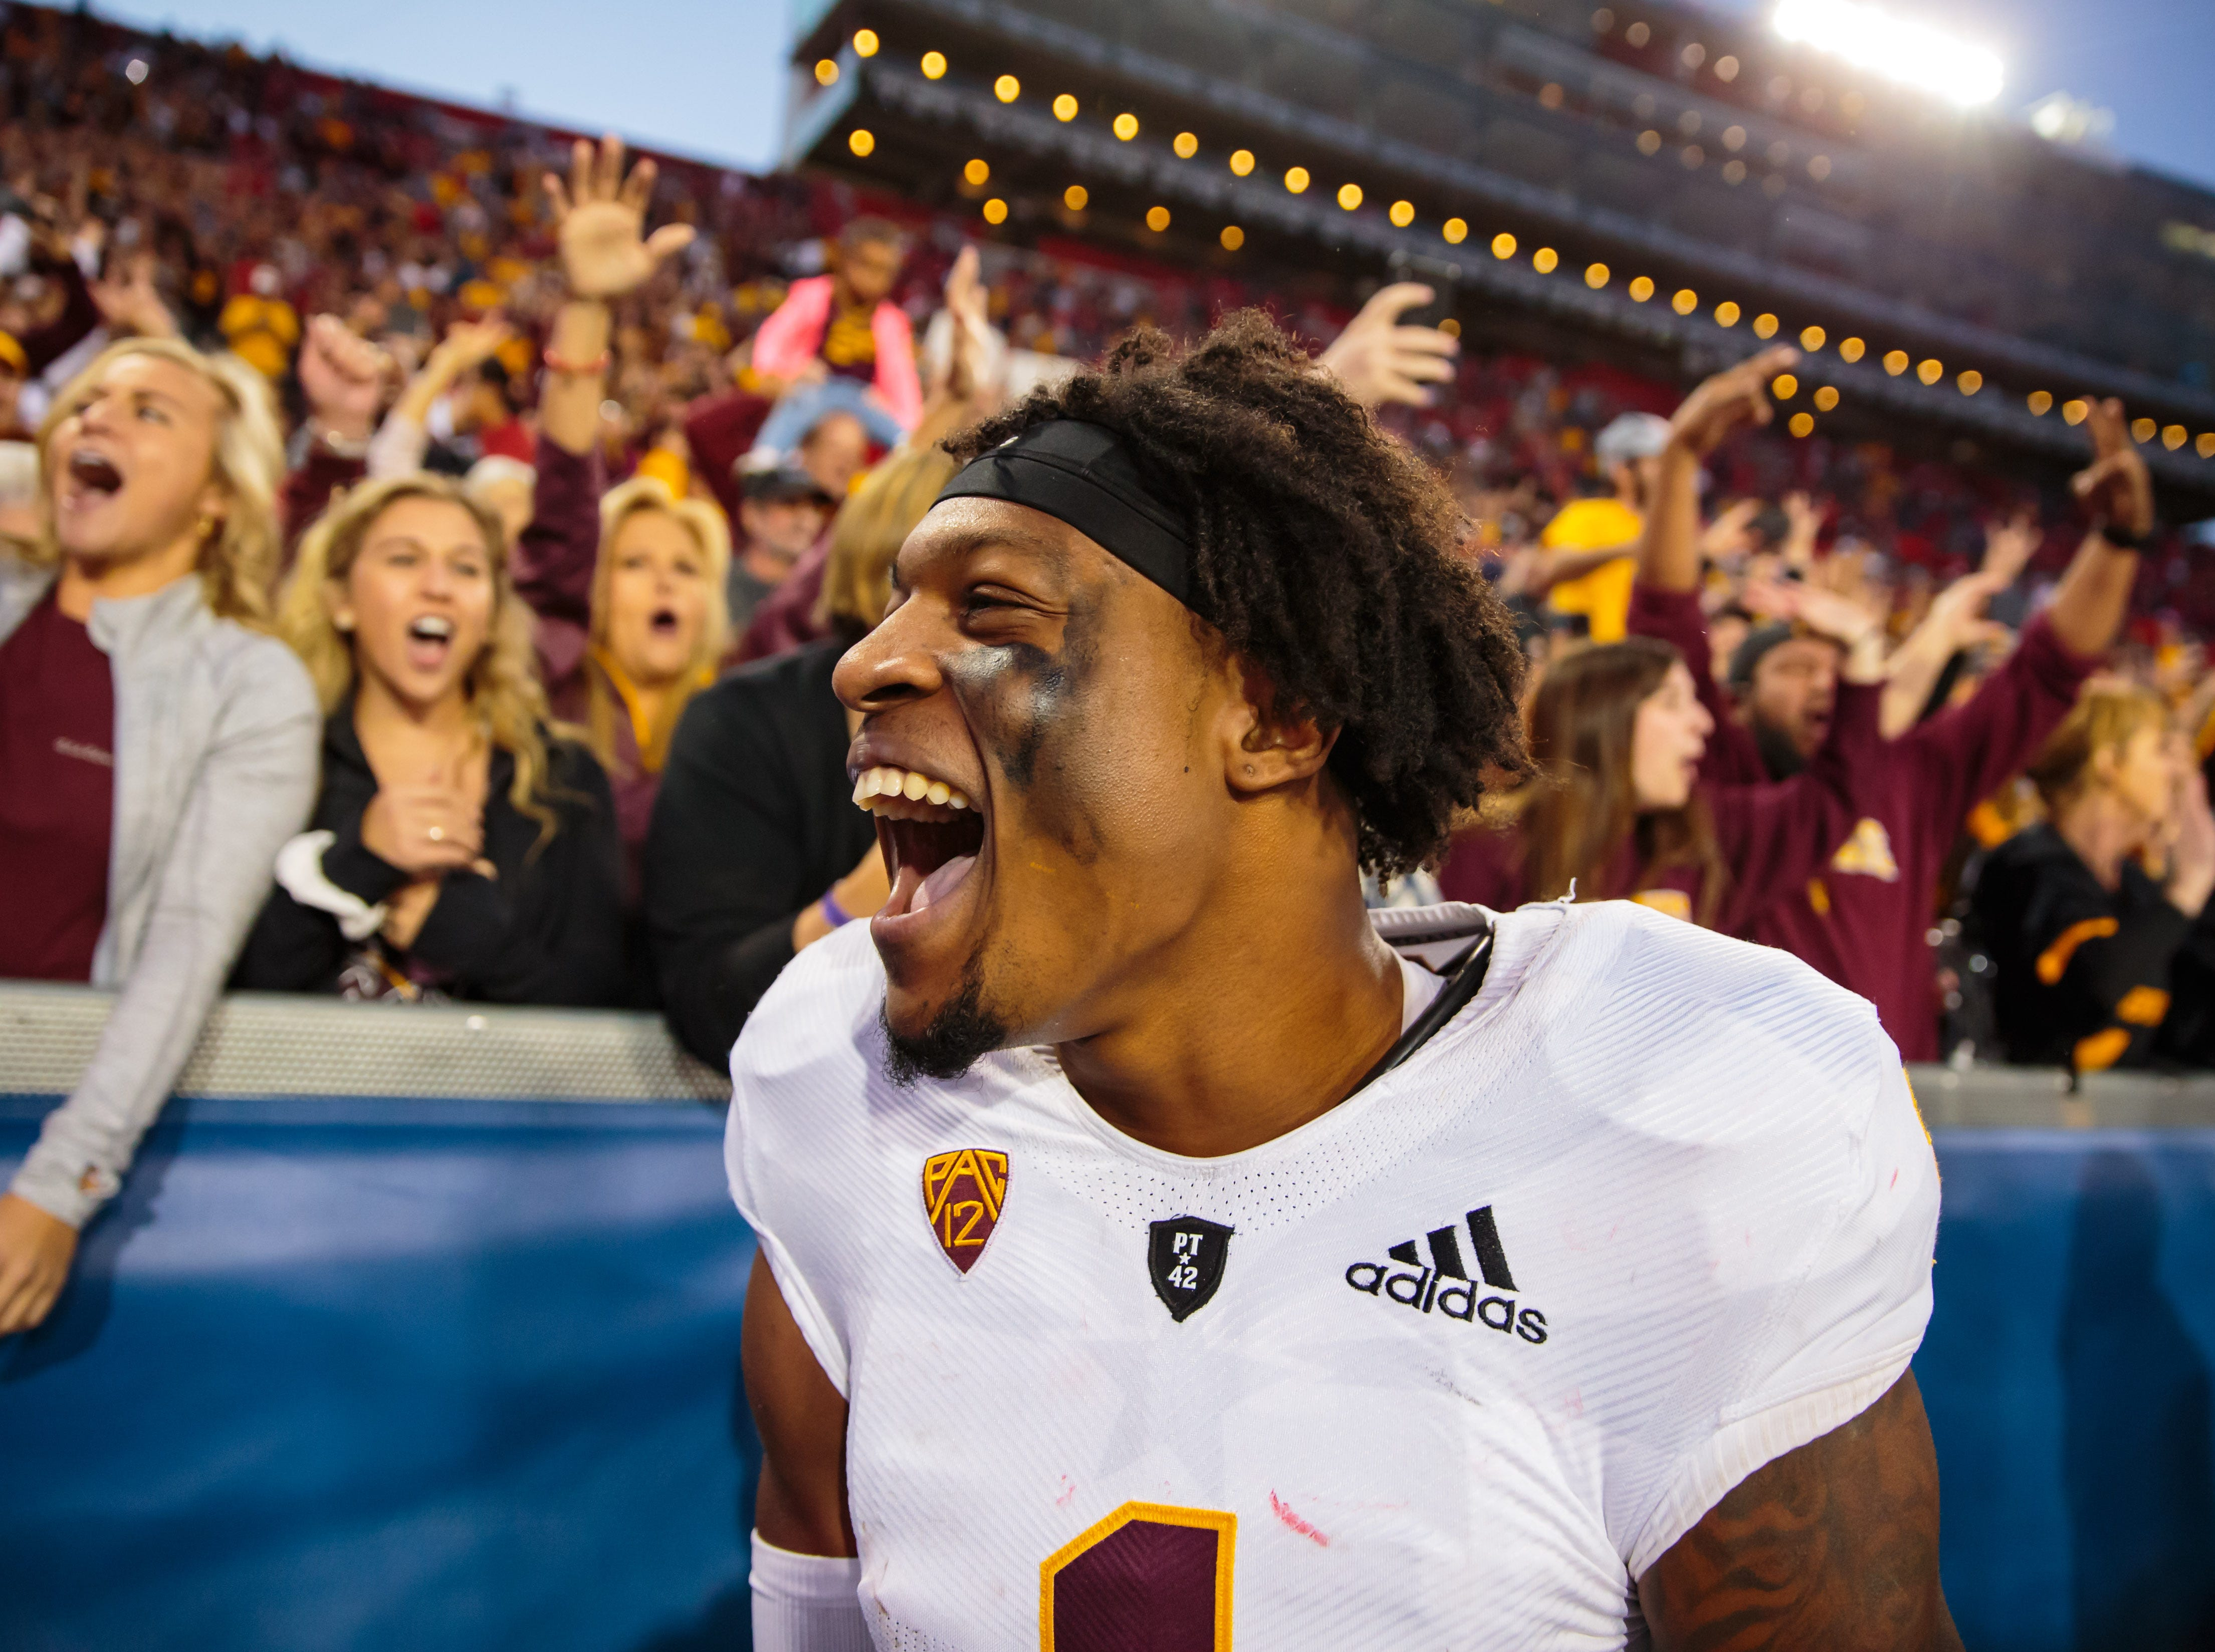 Arizona State Sun Devils wide receiver N'Keal Harry is taking his talents to the NFL draft.